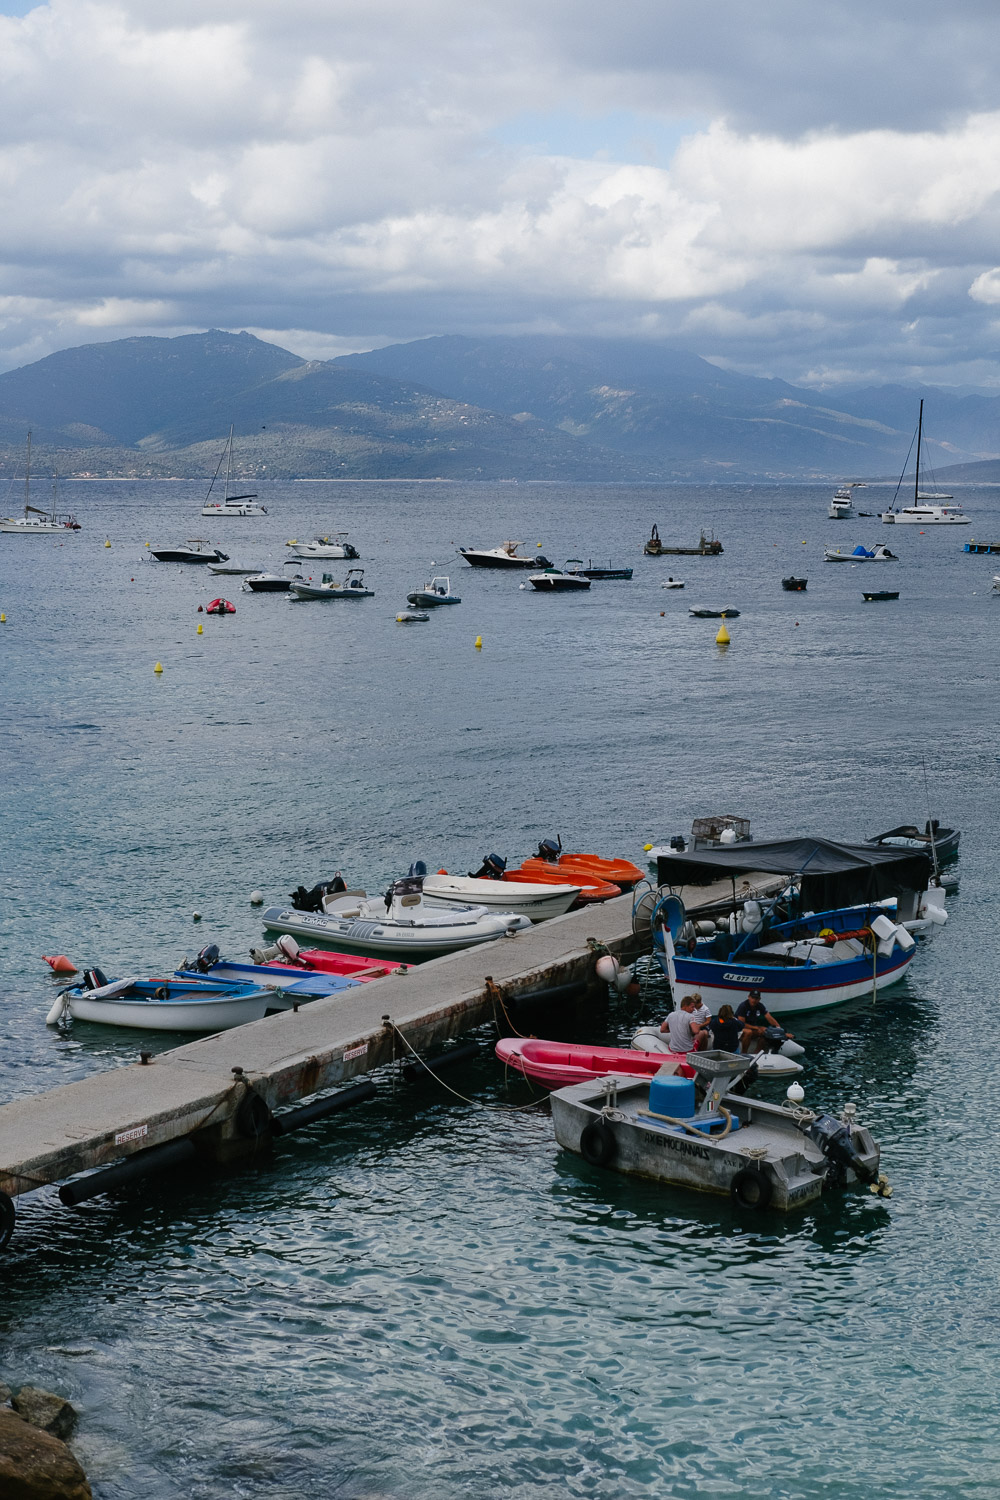 A dock with boats in Campomoro, Corsica